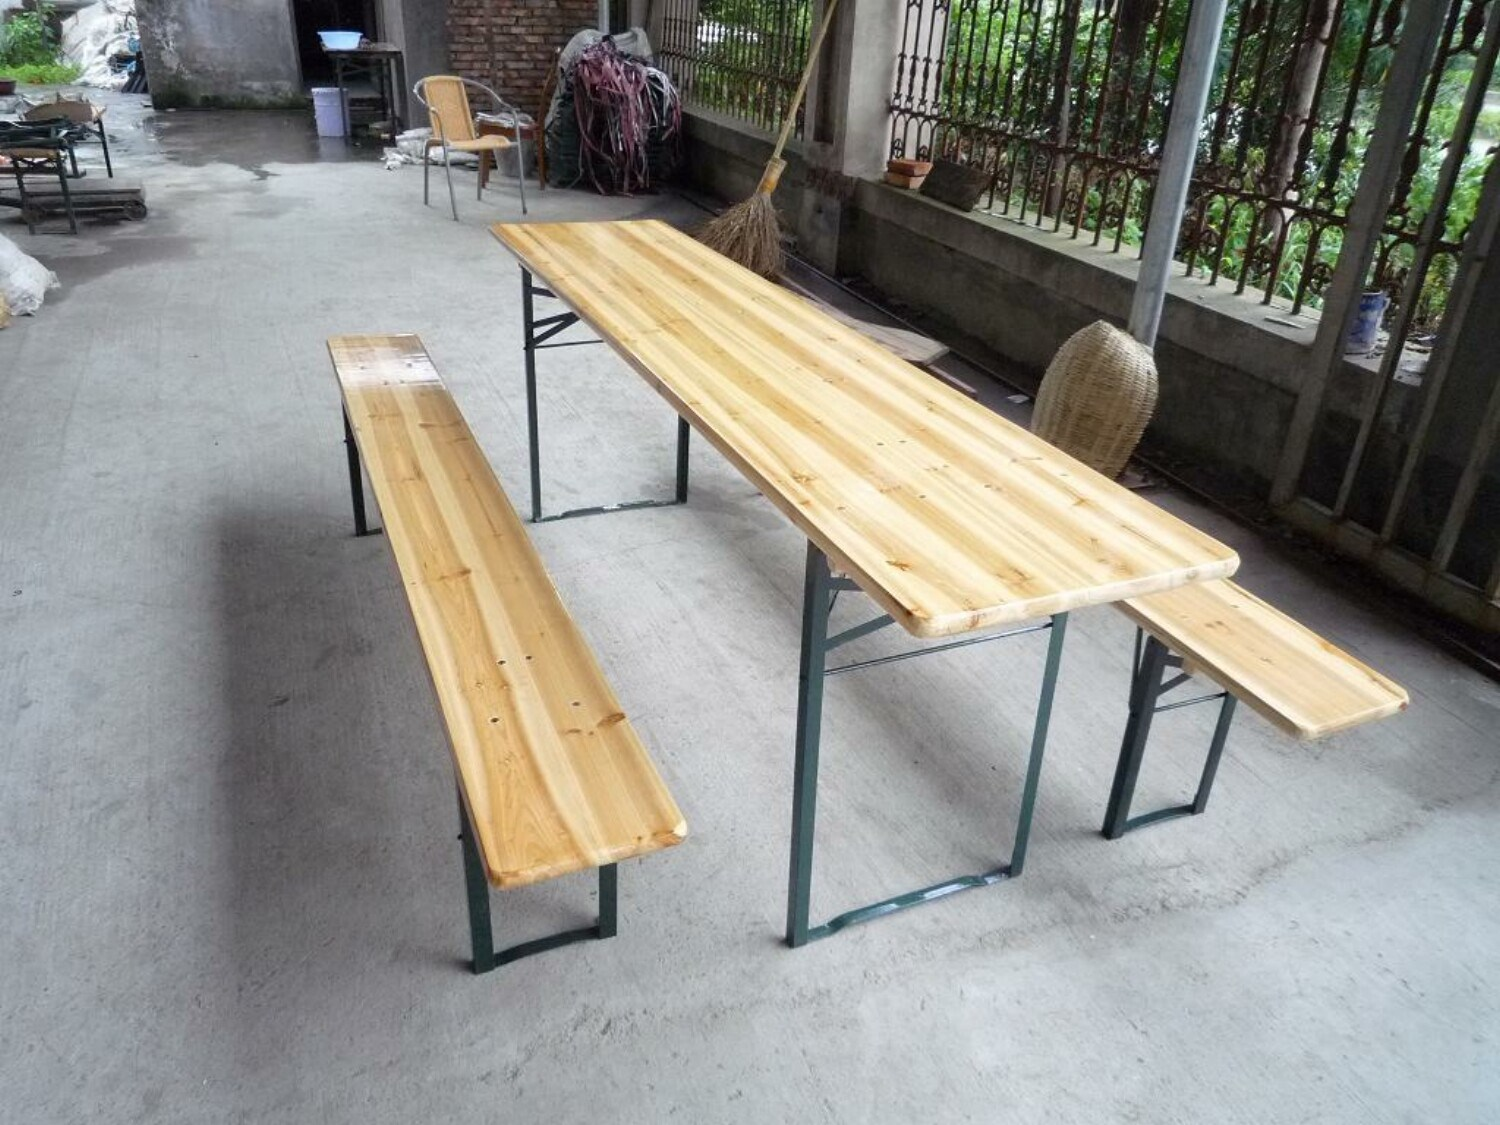 Groovy Hot Item Outdoor Wooden Beer Table And Benches Creativecarmelina Interior Chair Design Creativecarmelinacom